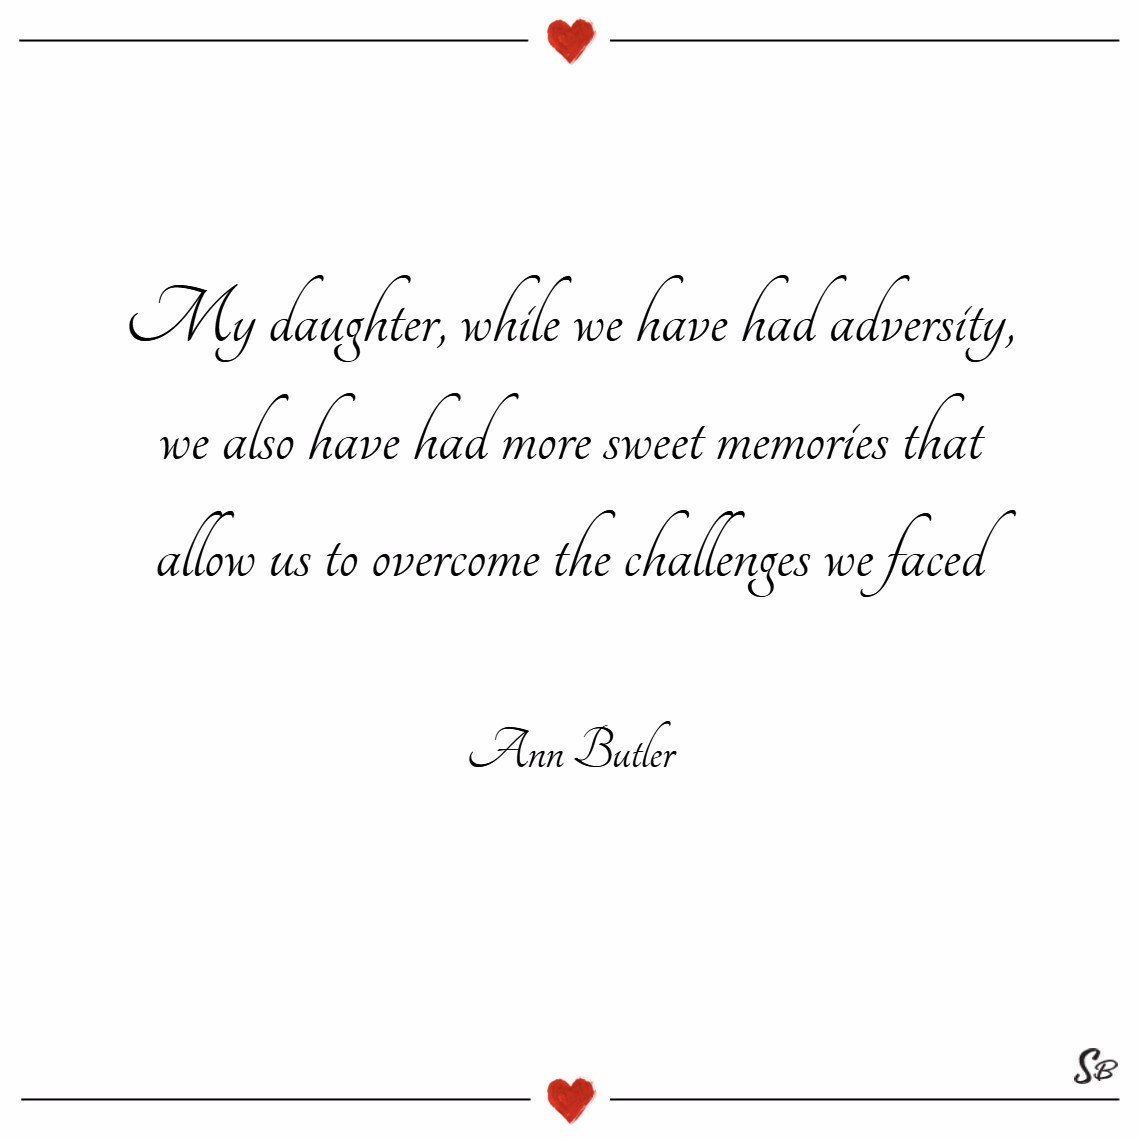 My daughter, while we have had adversity, we also have had more sweet memories that allow us to overcome the challenges we faced. – ann butler